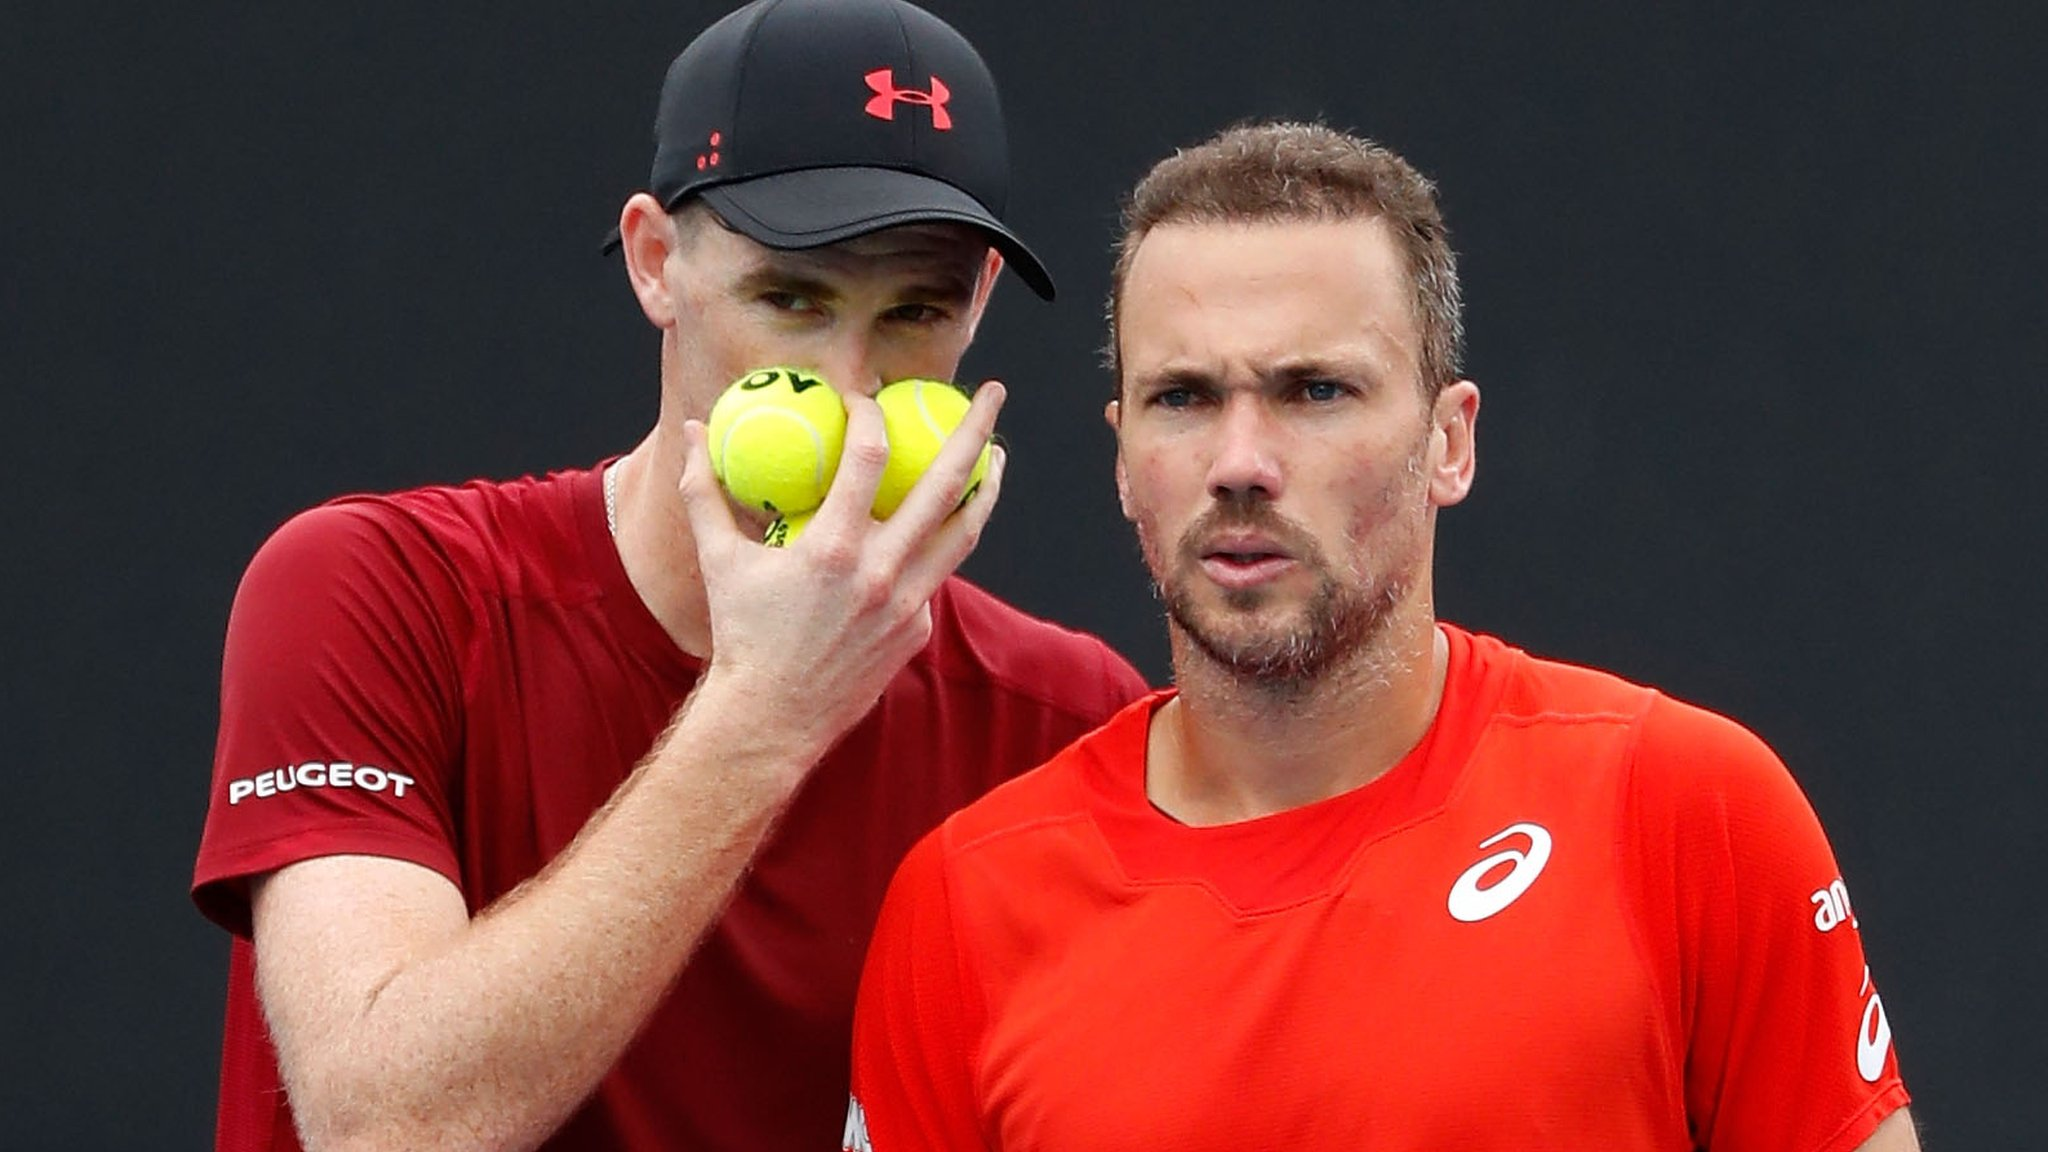 Doubles success not celebrated enough - GB's Murray after reaching third round